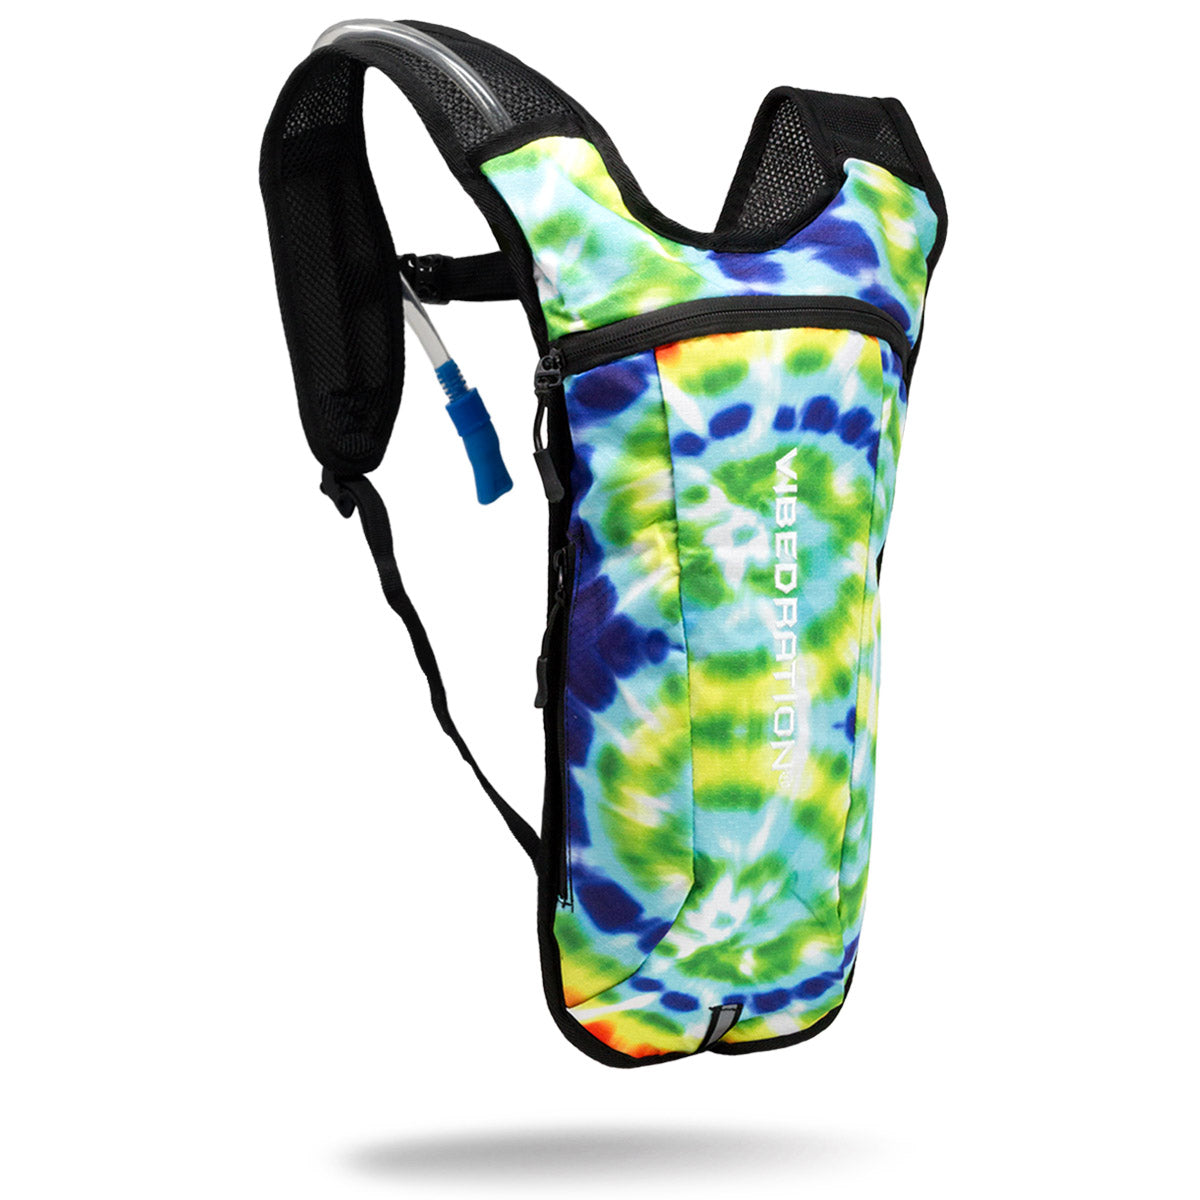 Blue and yellow tie-dye hydration pack with two liter water bladder